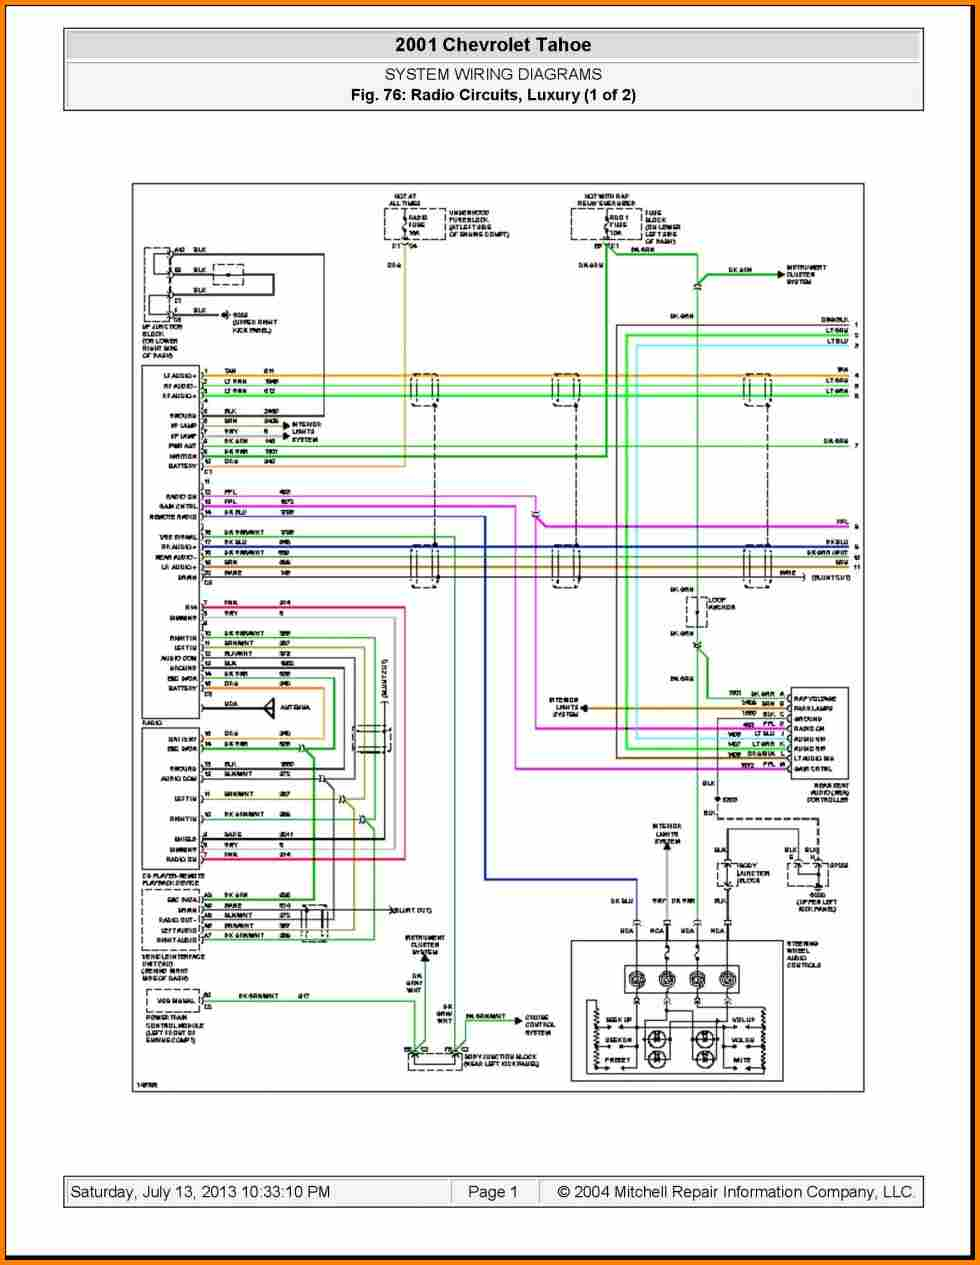 chevy radio wiring diagram Collection-2003 Chevy Silverado Wiring Diagram 2004 Chevrolet Radio Get Free Template 2005 Gmc Sierra Bose Tail 12-r